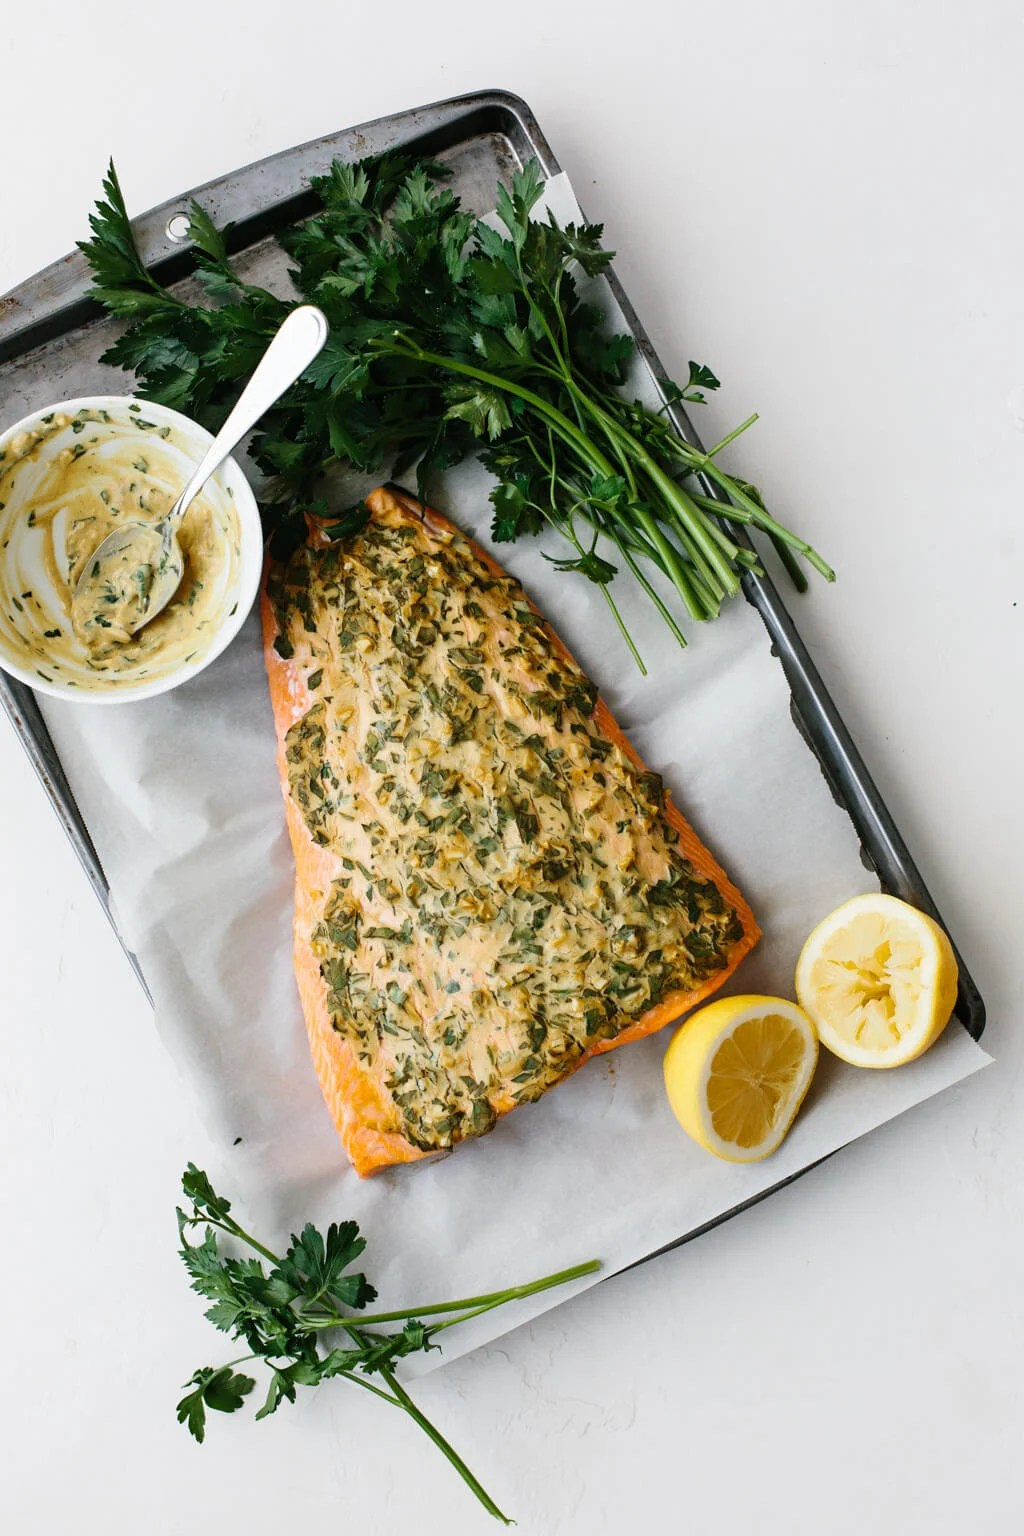 Baked salmon with Dijon on a baking sheet.